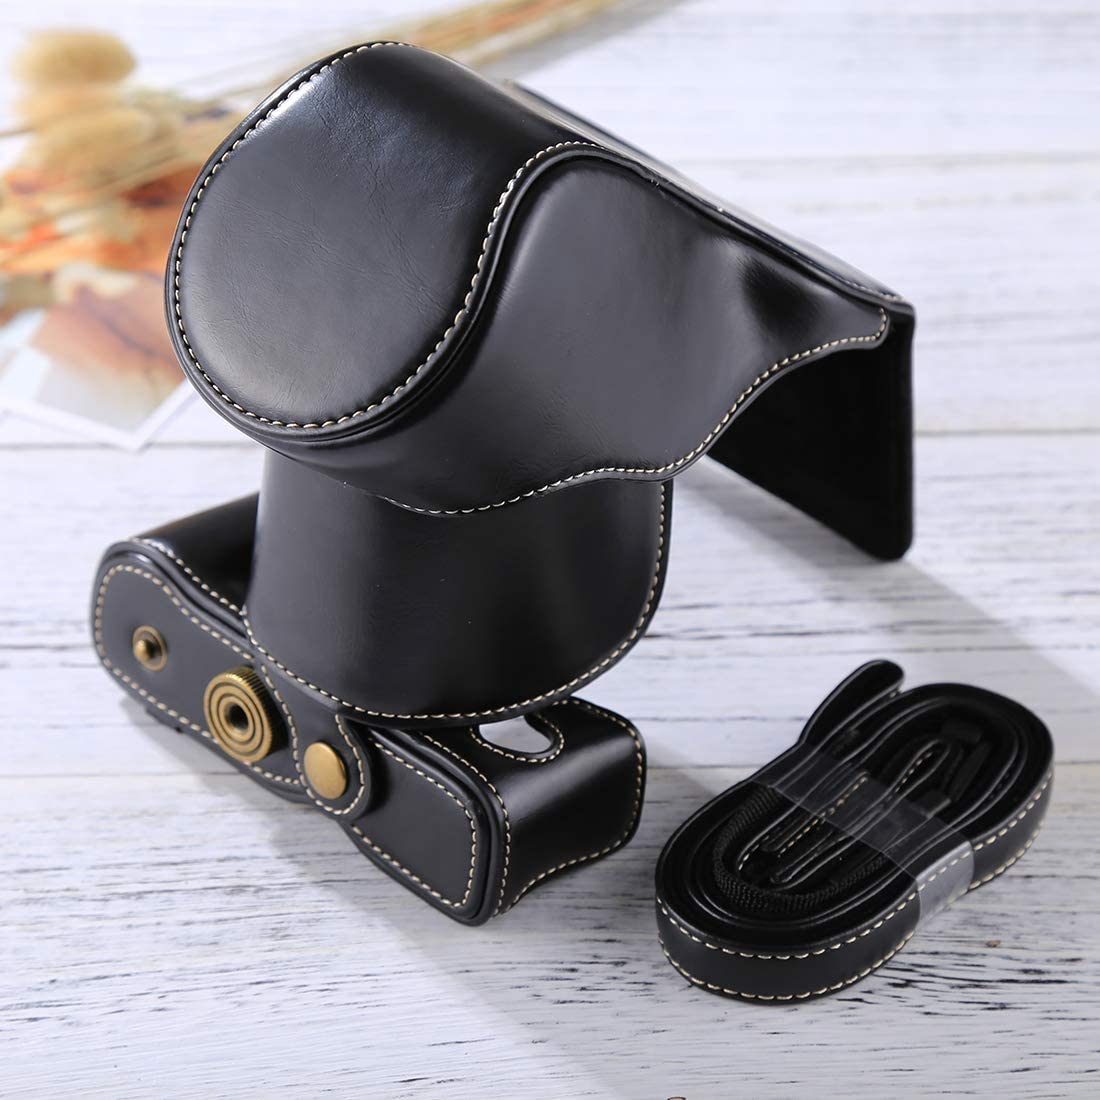 Black PULeather Strap YHM Full Body Camera PU Leather Case Bag with Strap for FUJIFILM X-A3 // X-A2// X-M1 // X-A10 16-50mm // 18-55mm // XF 35mm Lens Color : Black